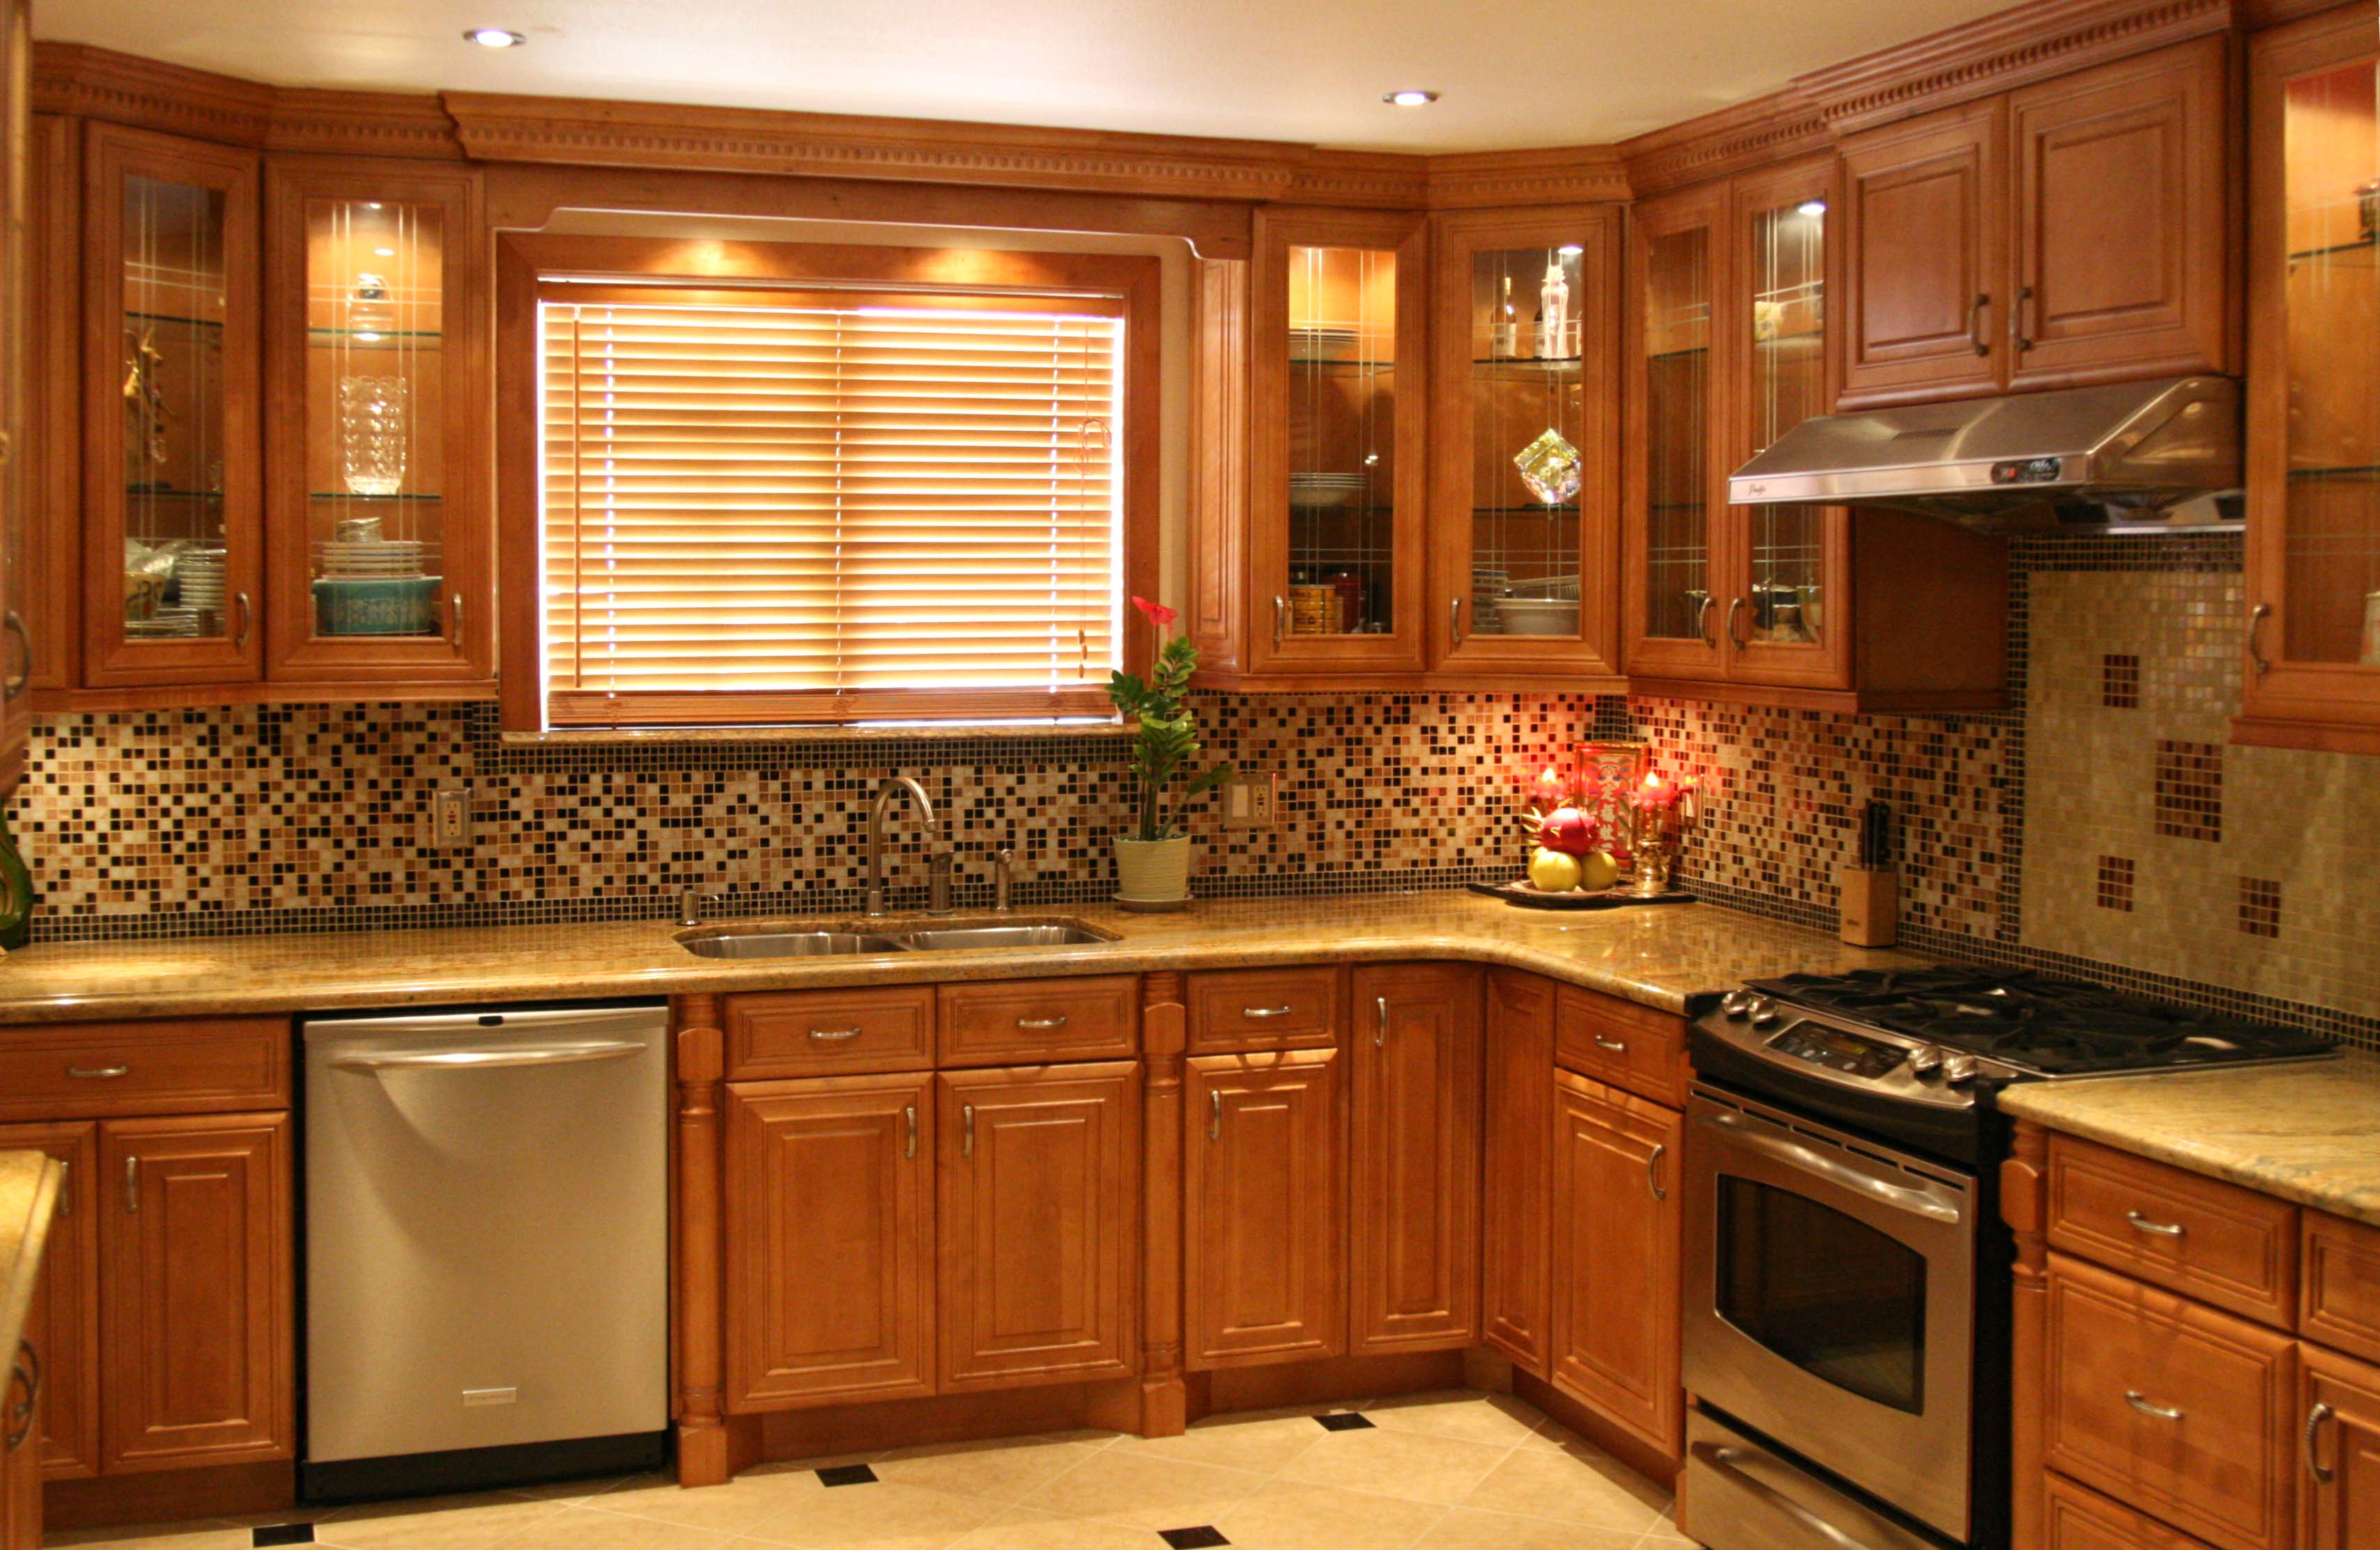 Maple Melamine Kitchen Cabinets Vs Wood Solid Wood Vs Laminate Kitchen Cabinets Cabinetry